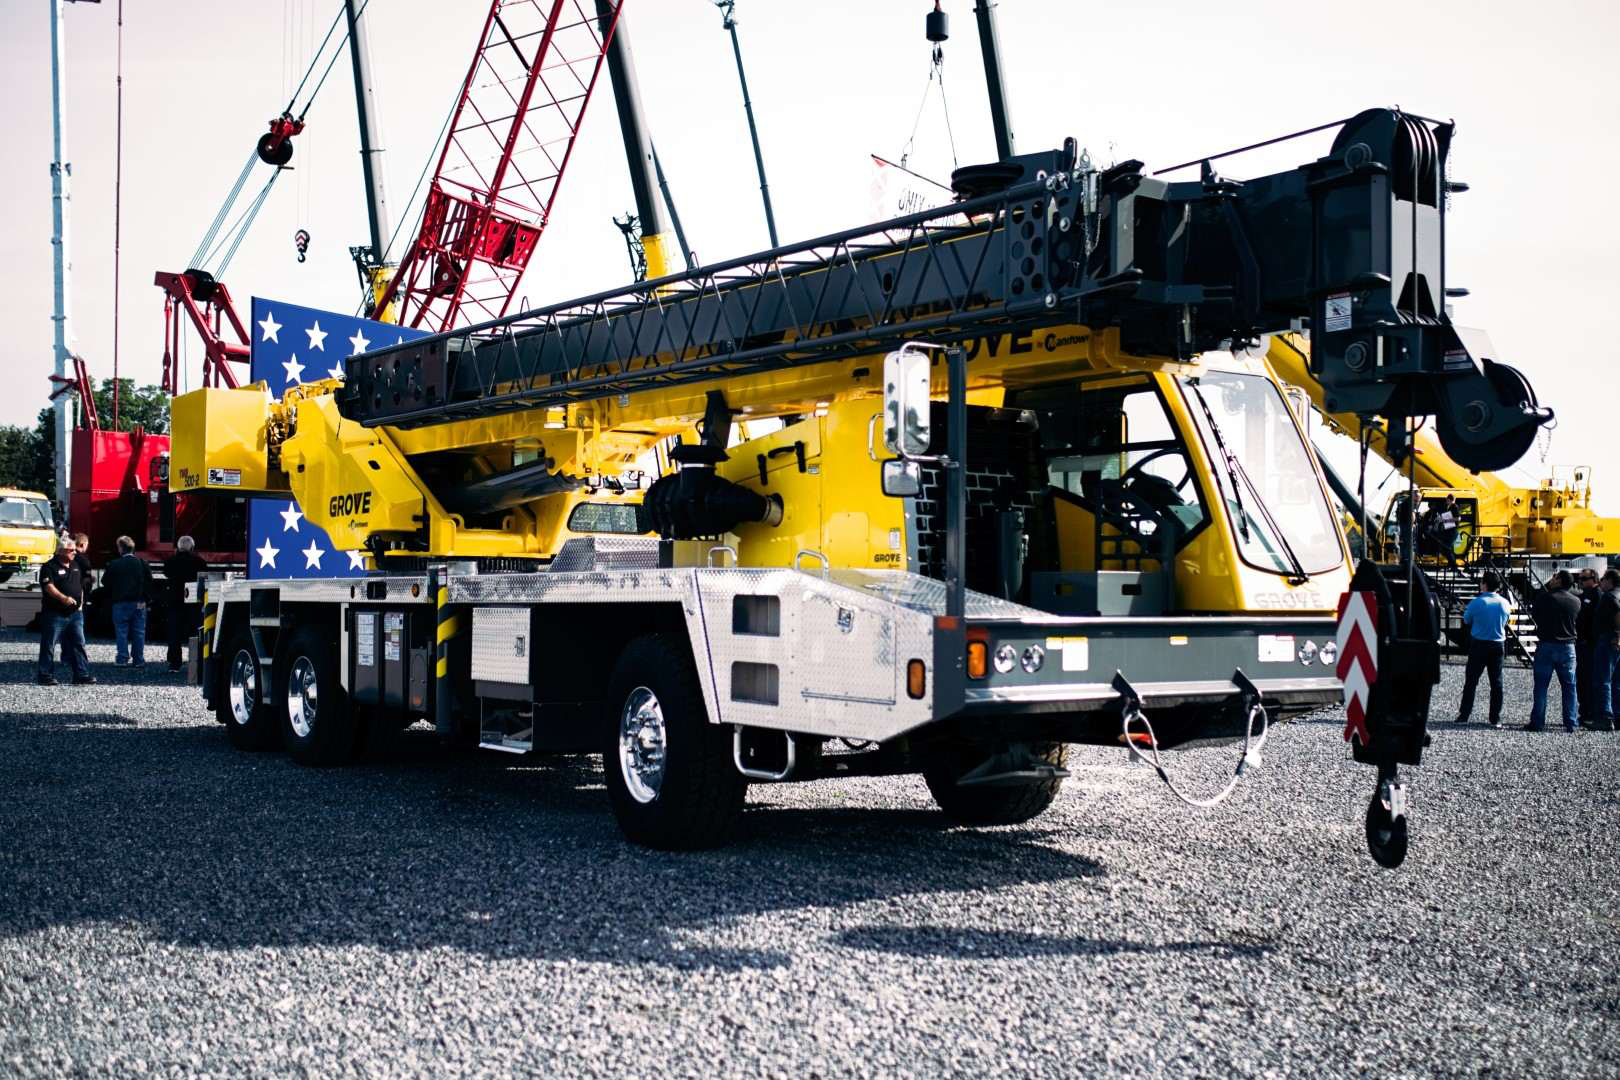 Manitowoc Cranes' way of parts pricing across its network